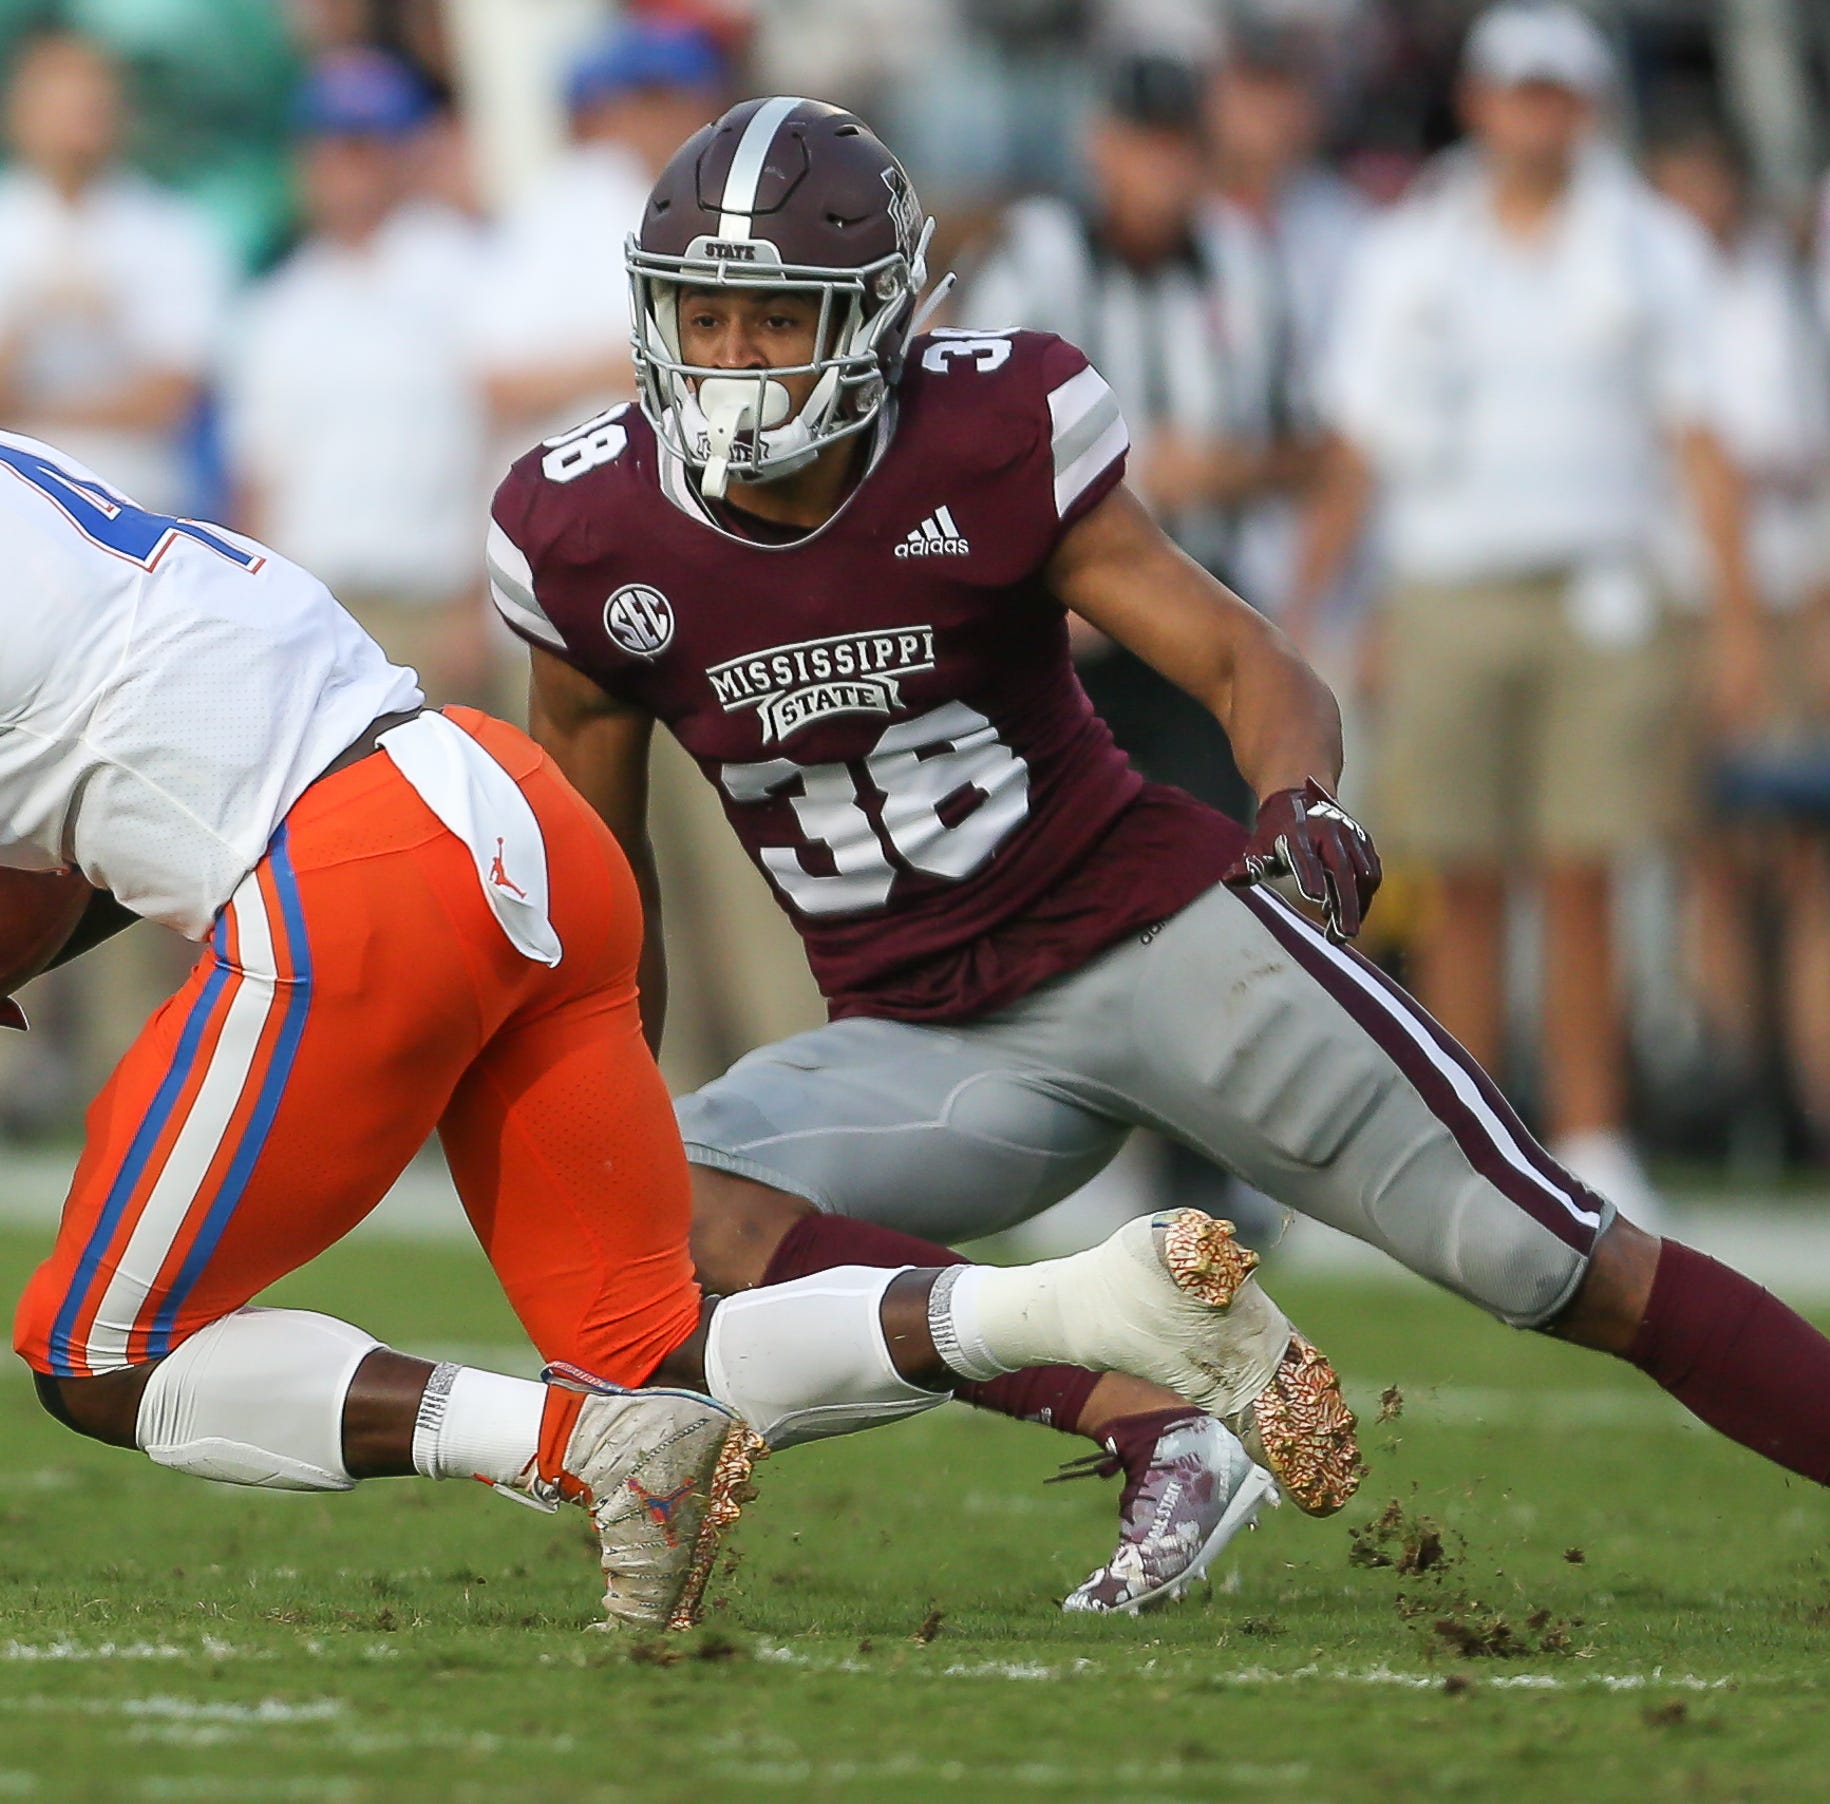 Johnathan Abram of Mississippi State selected by Oakland Raiders in 2019 NFL Draft